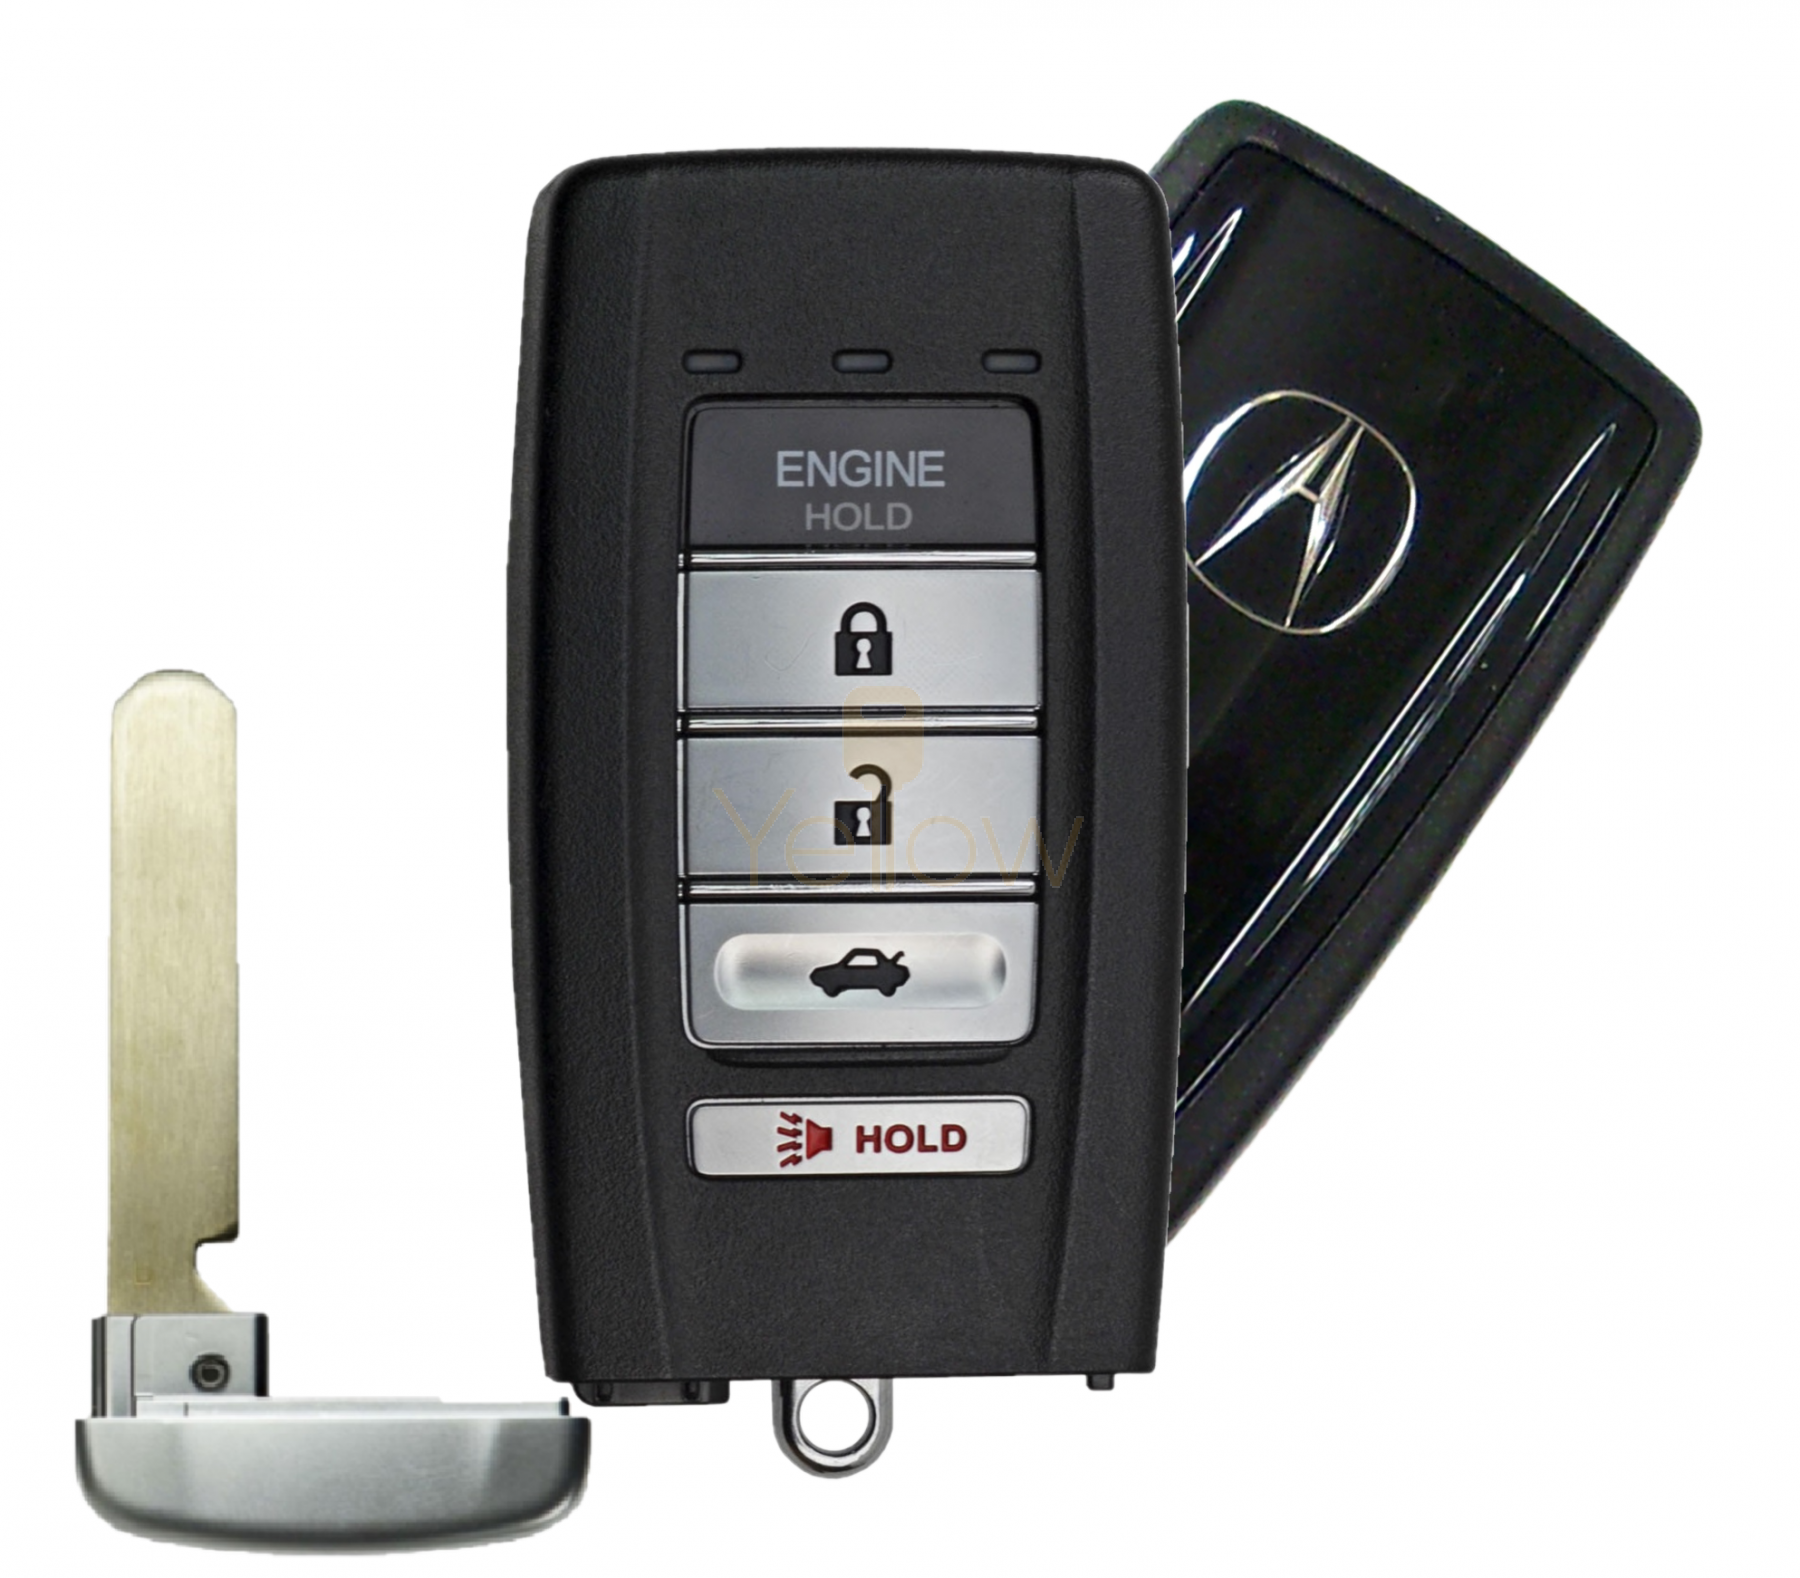 Lowest Wholesale Car Key Supplies Prices